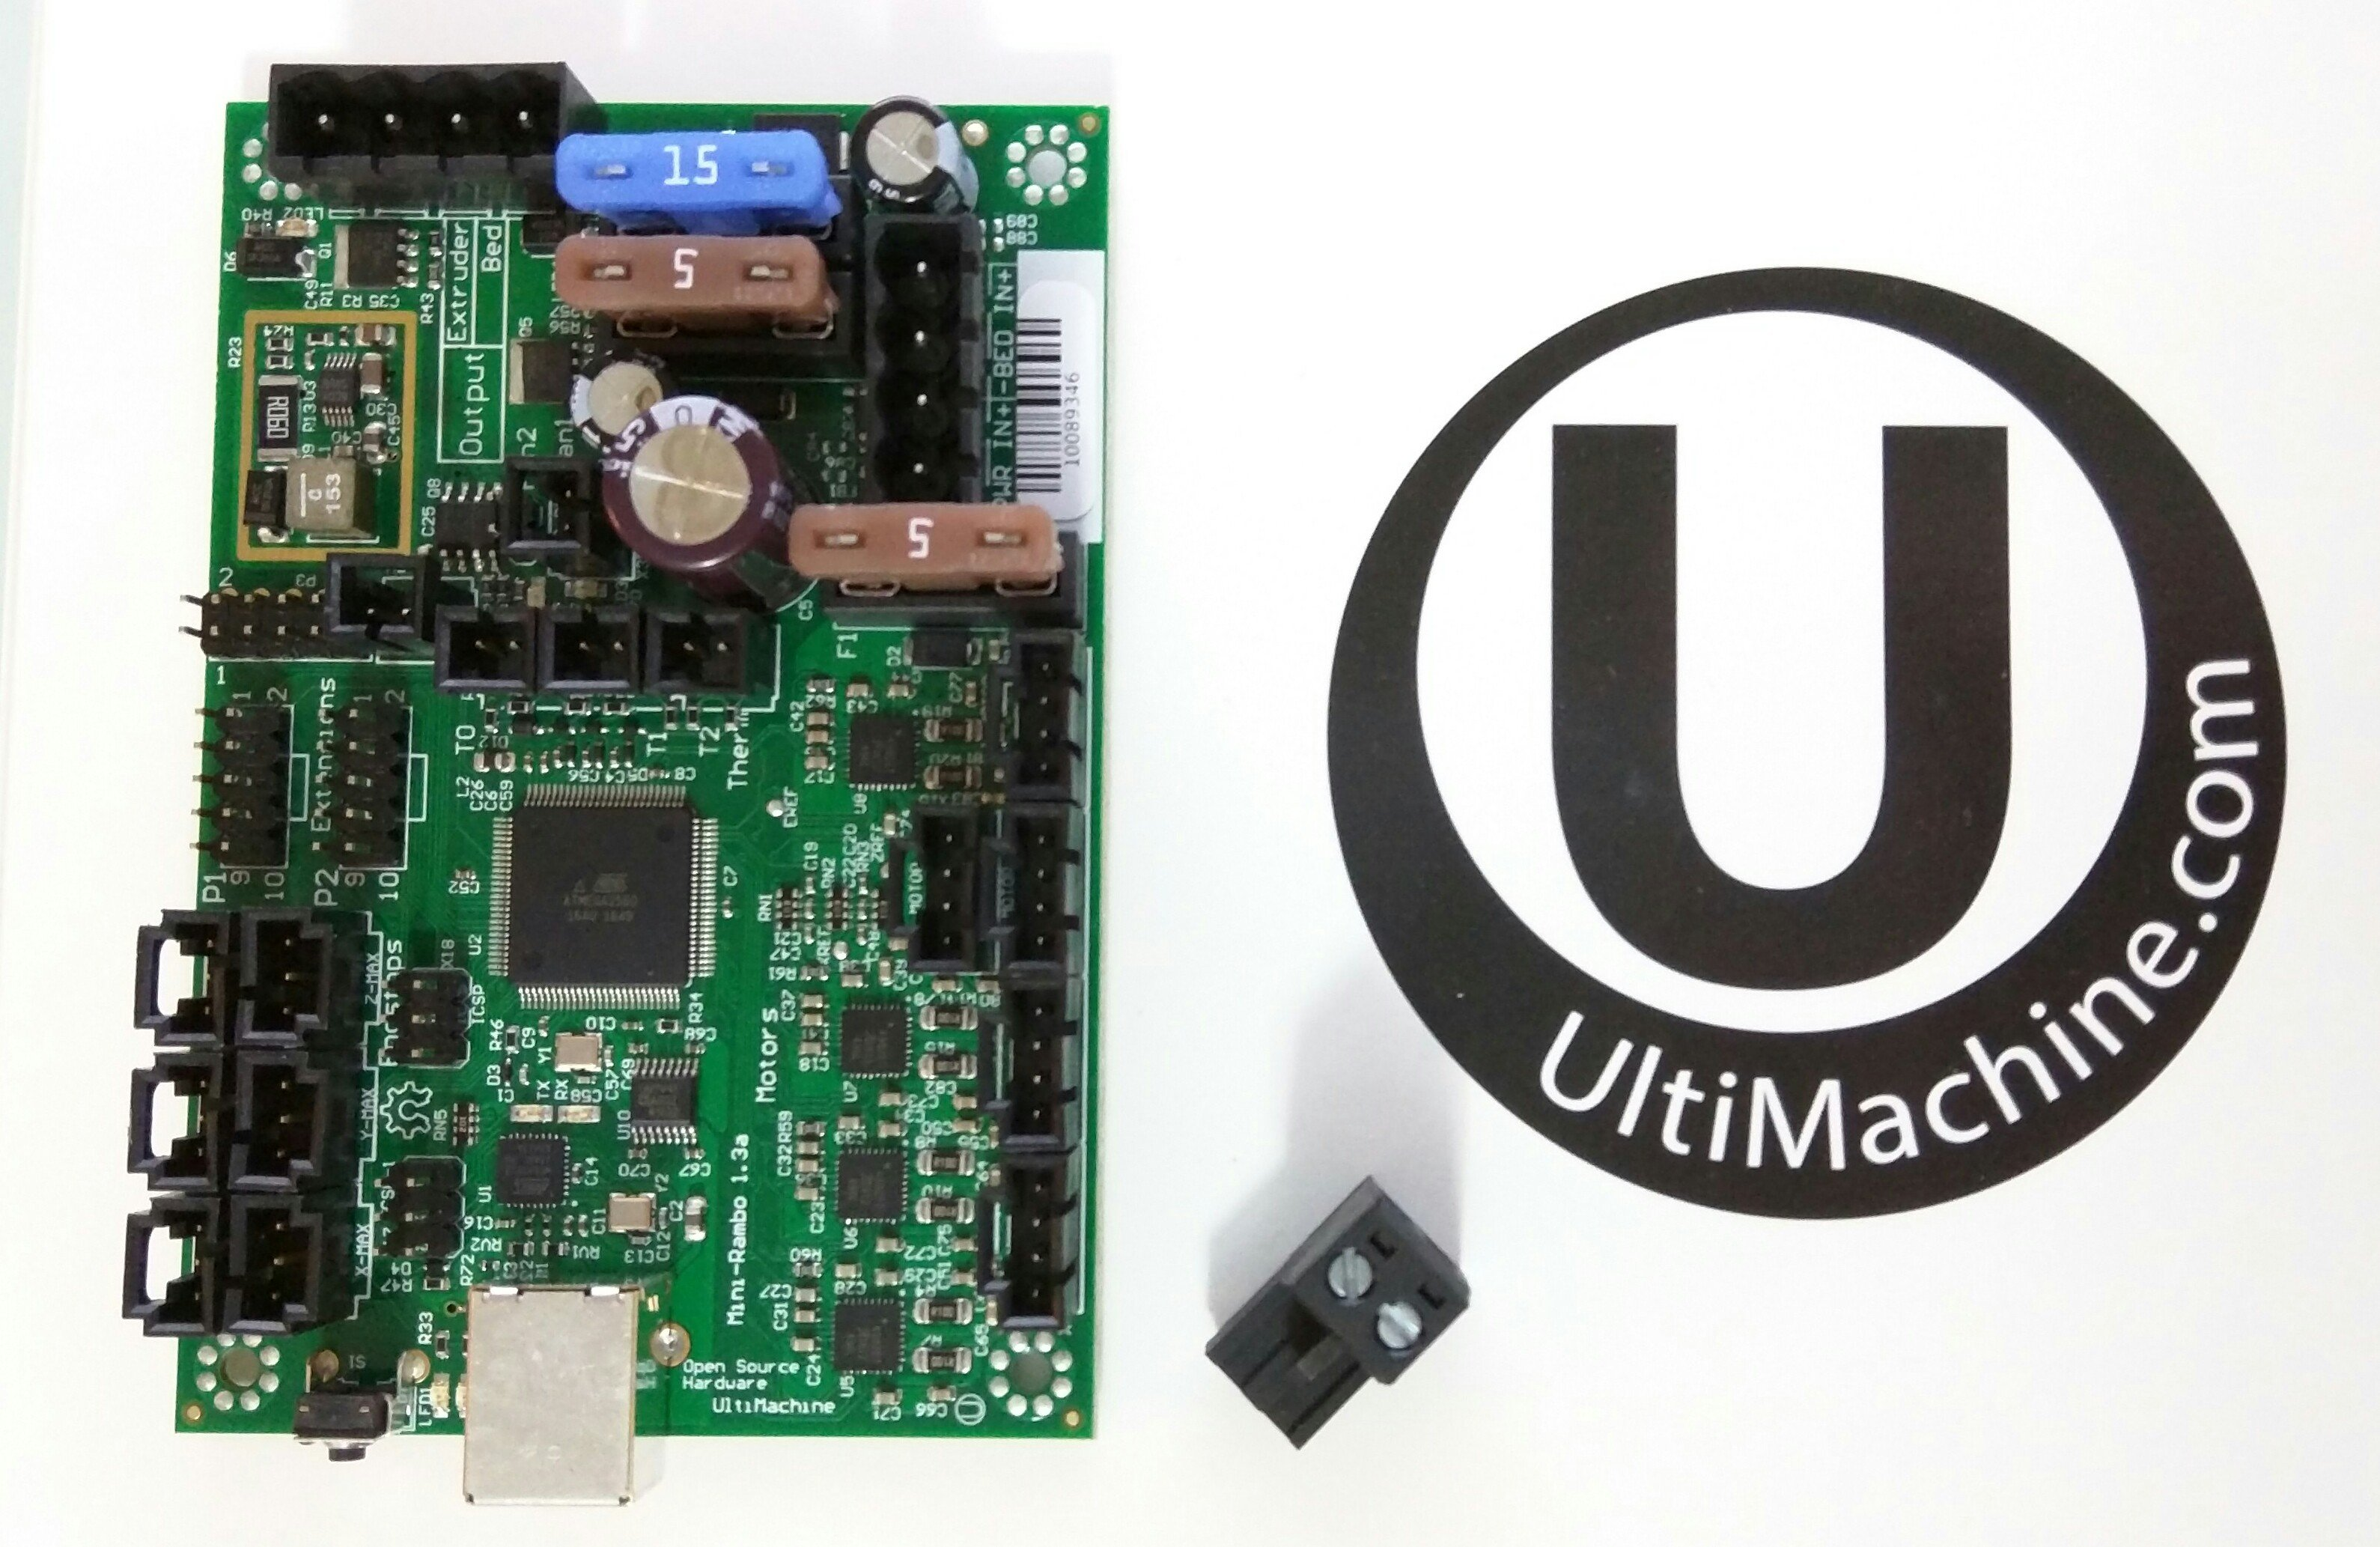 Ultimachine Control Boards V1 Engineering Mini Cnc Controller Wiring Diagram Are Extremely High Quality And Built As The Refined Updated Ramps 14 Board Meaning It Is A More Reliable Has Been Designed